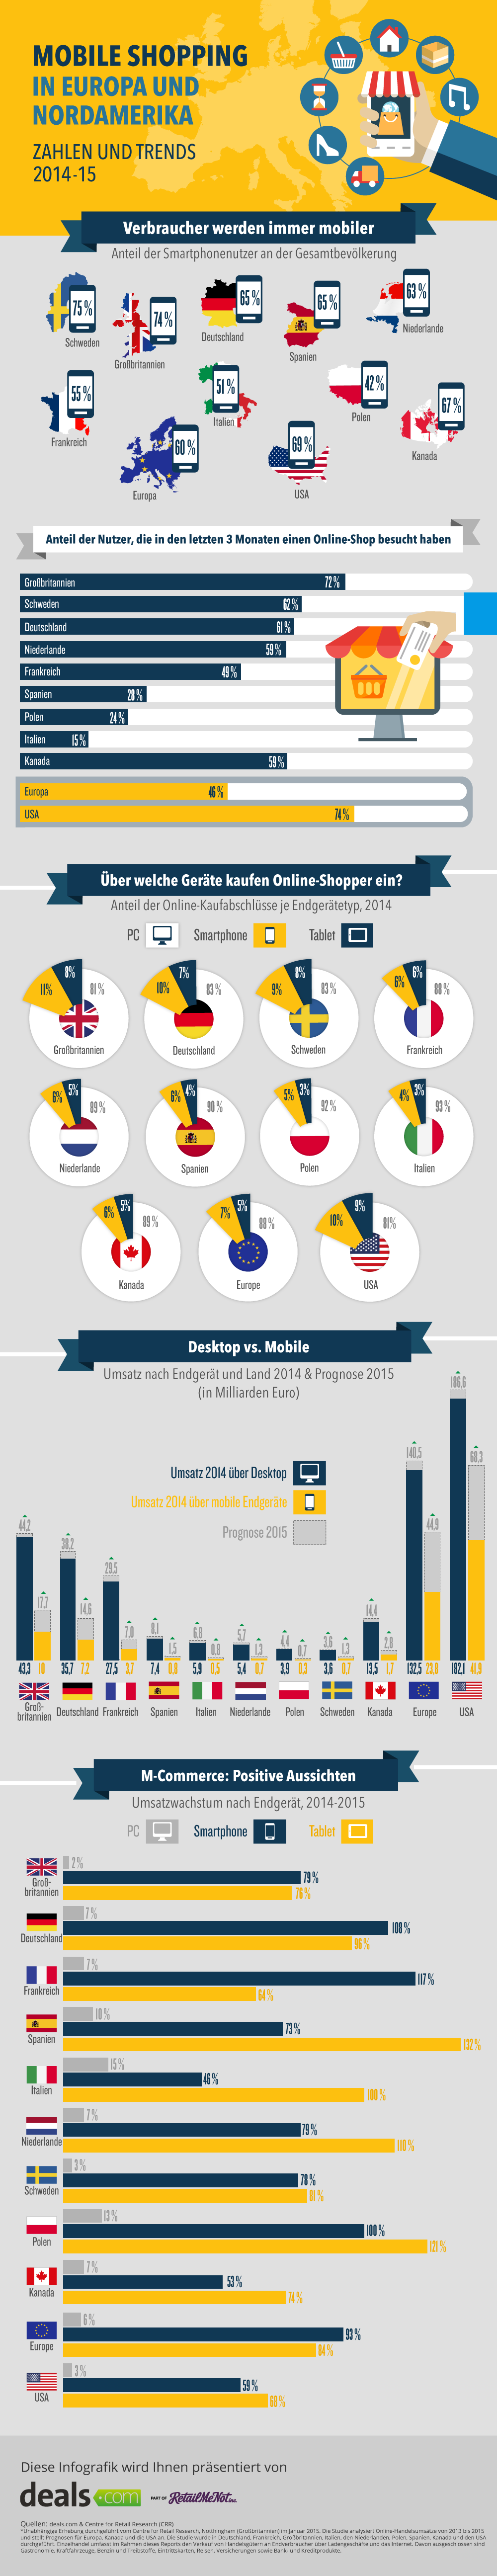 infografik mobile shopping